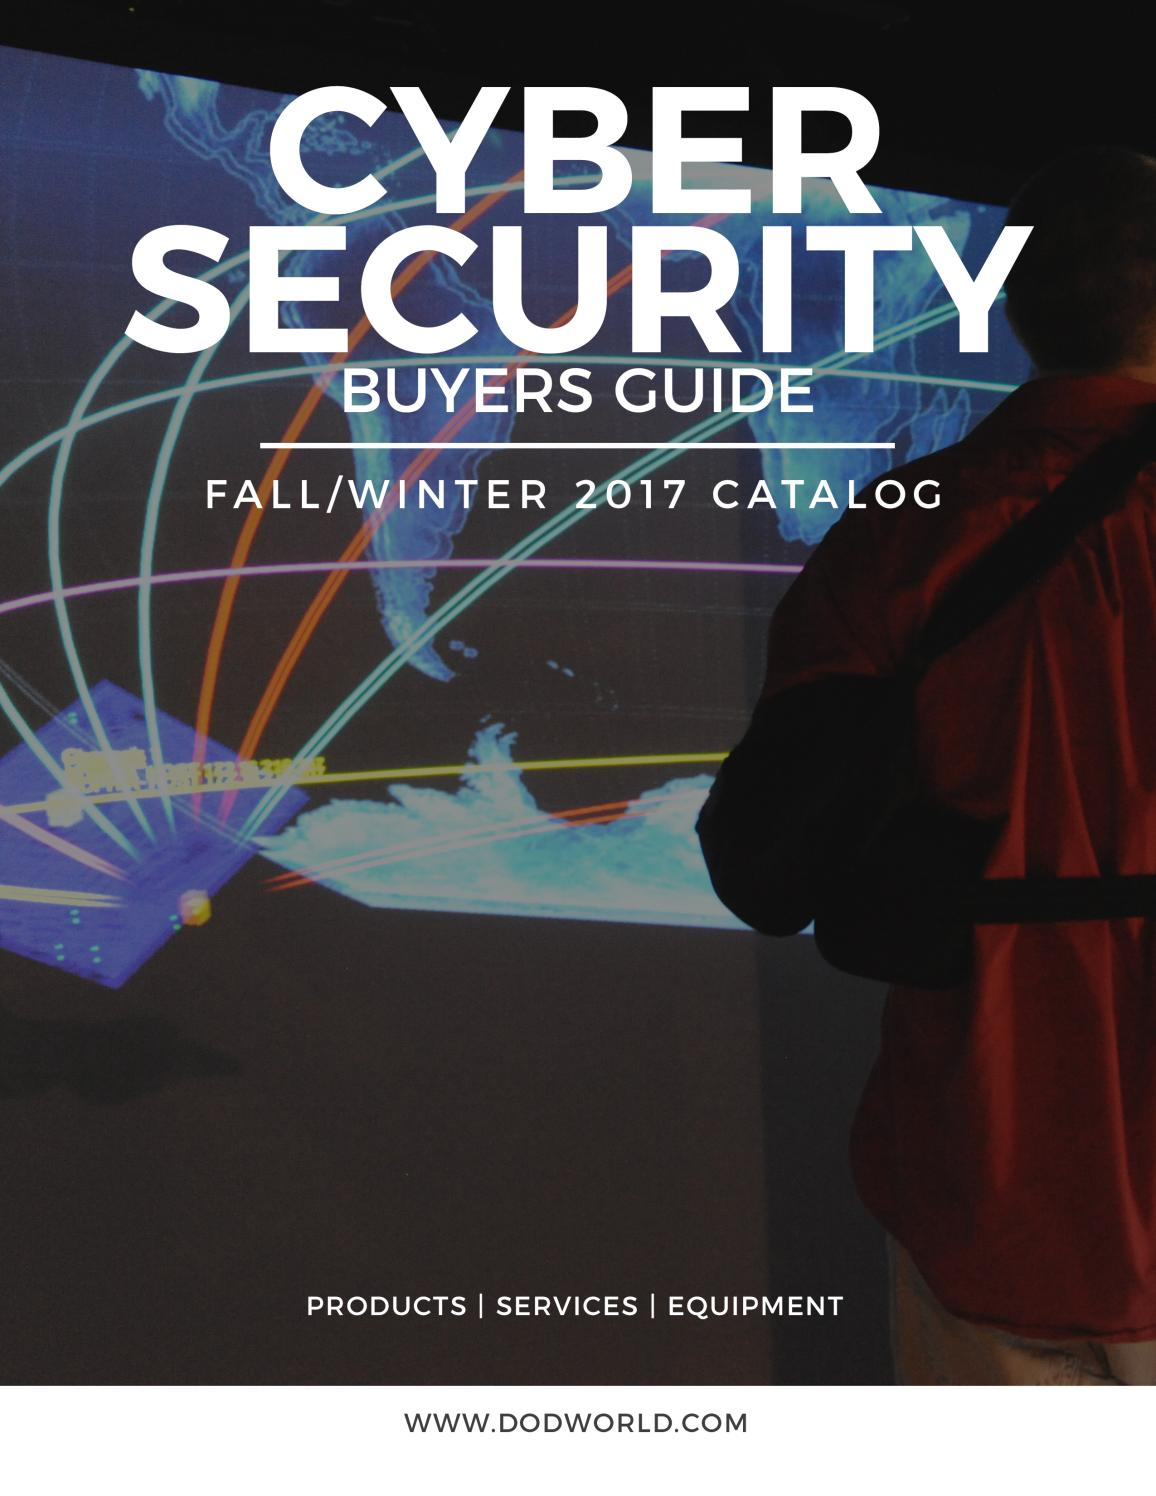 Cyber Security Buyers Guide Fall/Winter 2017 by Federal